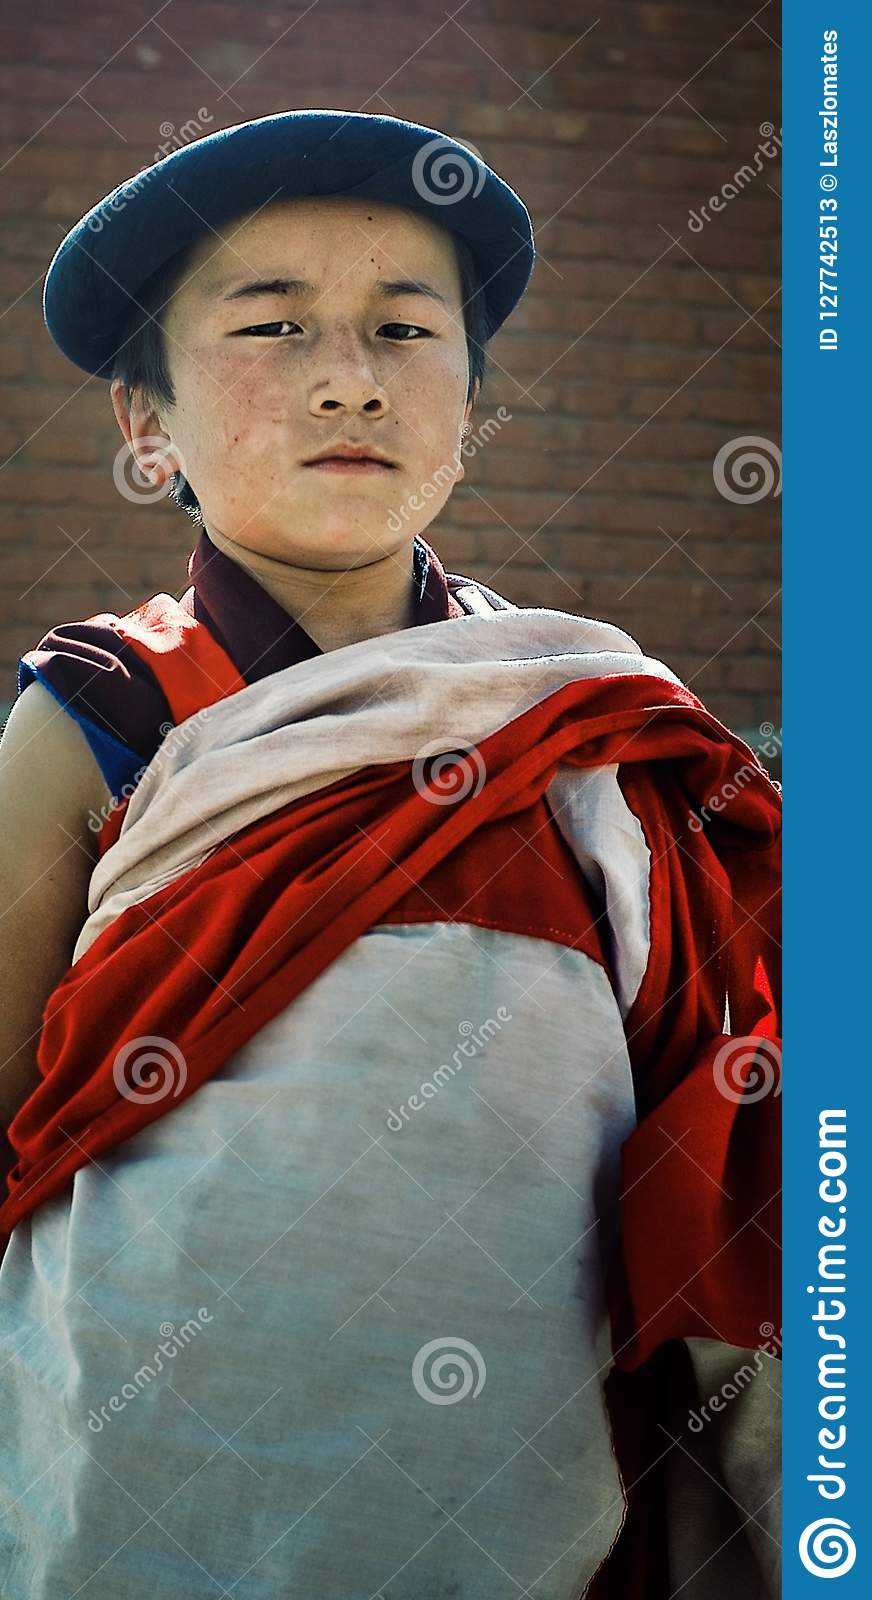 young tibetan buddhist novice monk in fromt of a brick wall with a traditional dress and hat